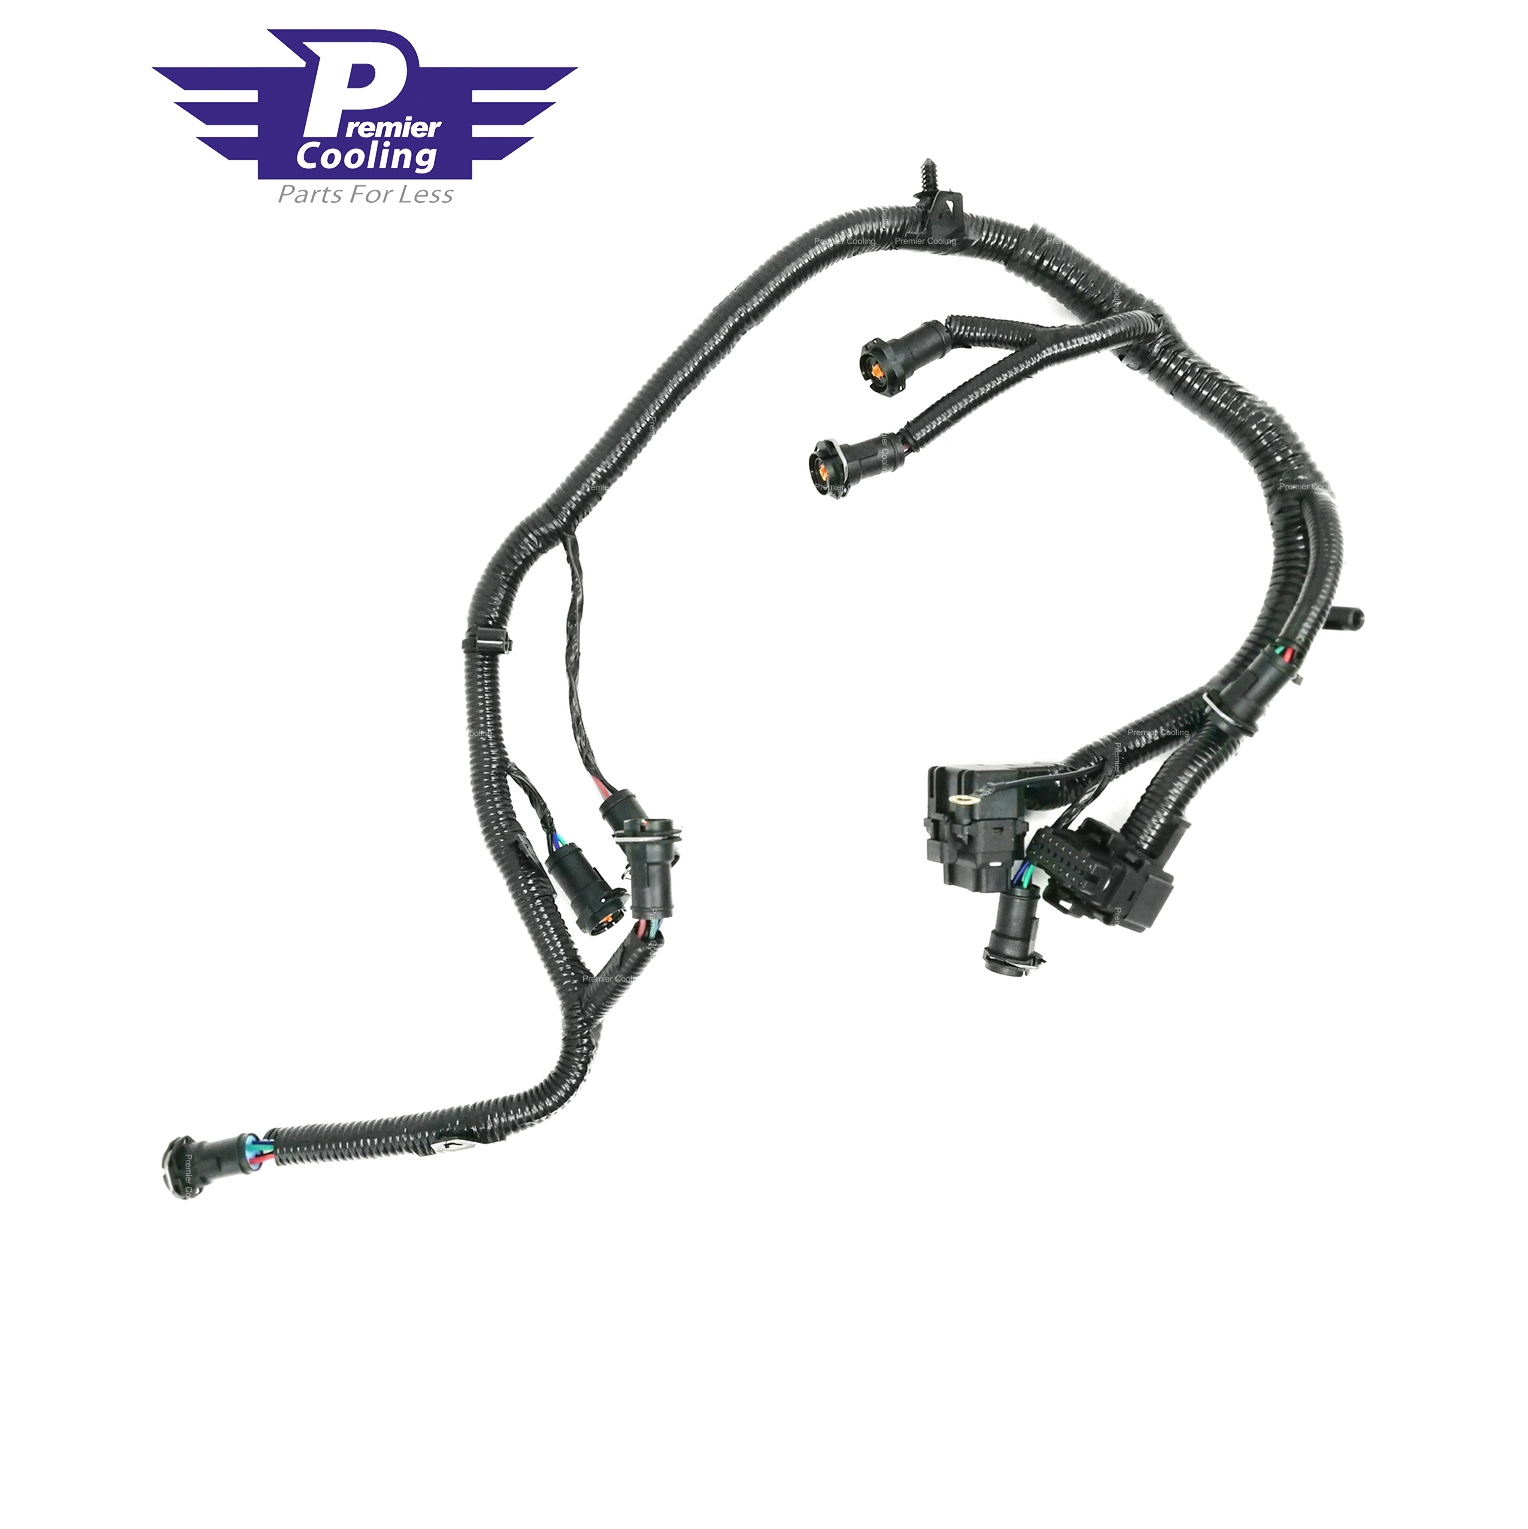 New Ficm Fuel Injector Module Wiring Harness For 03 07 Ford 6 0l Powerstrok